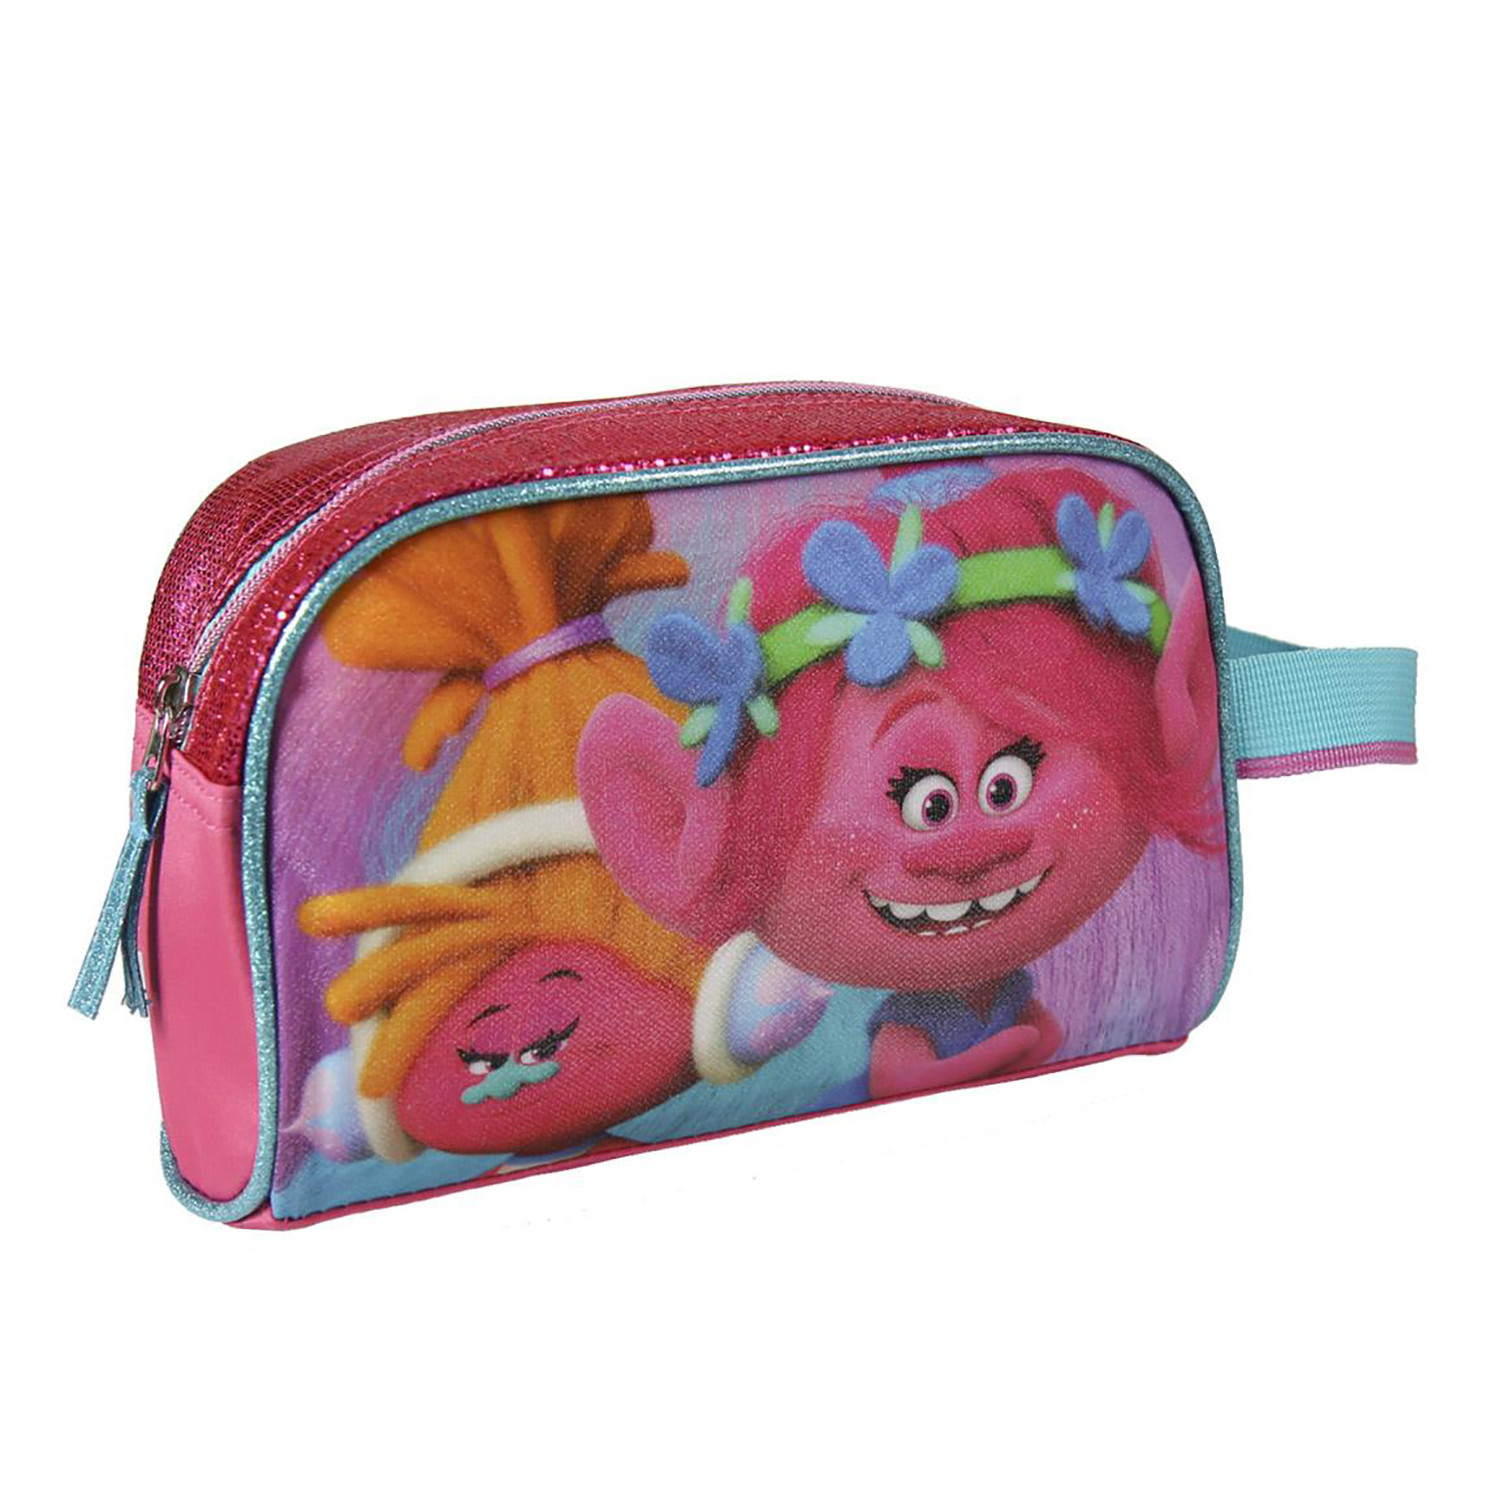 Bag Adaptable to Trolley of Trolls Original Home and More